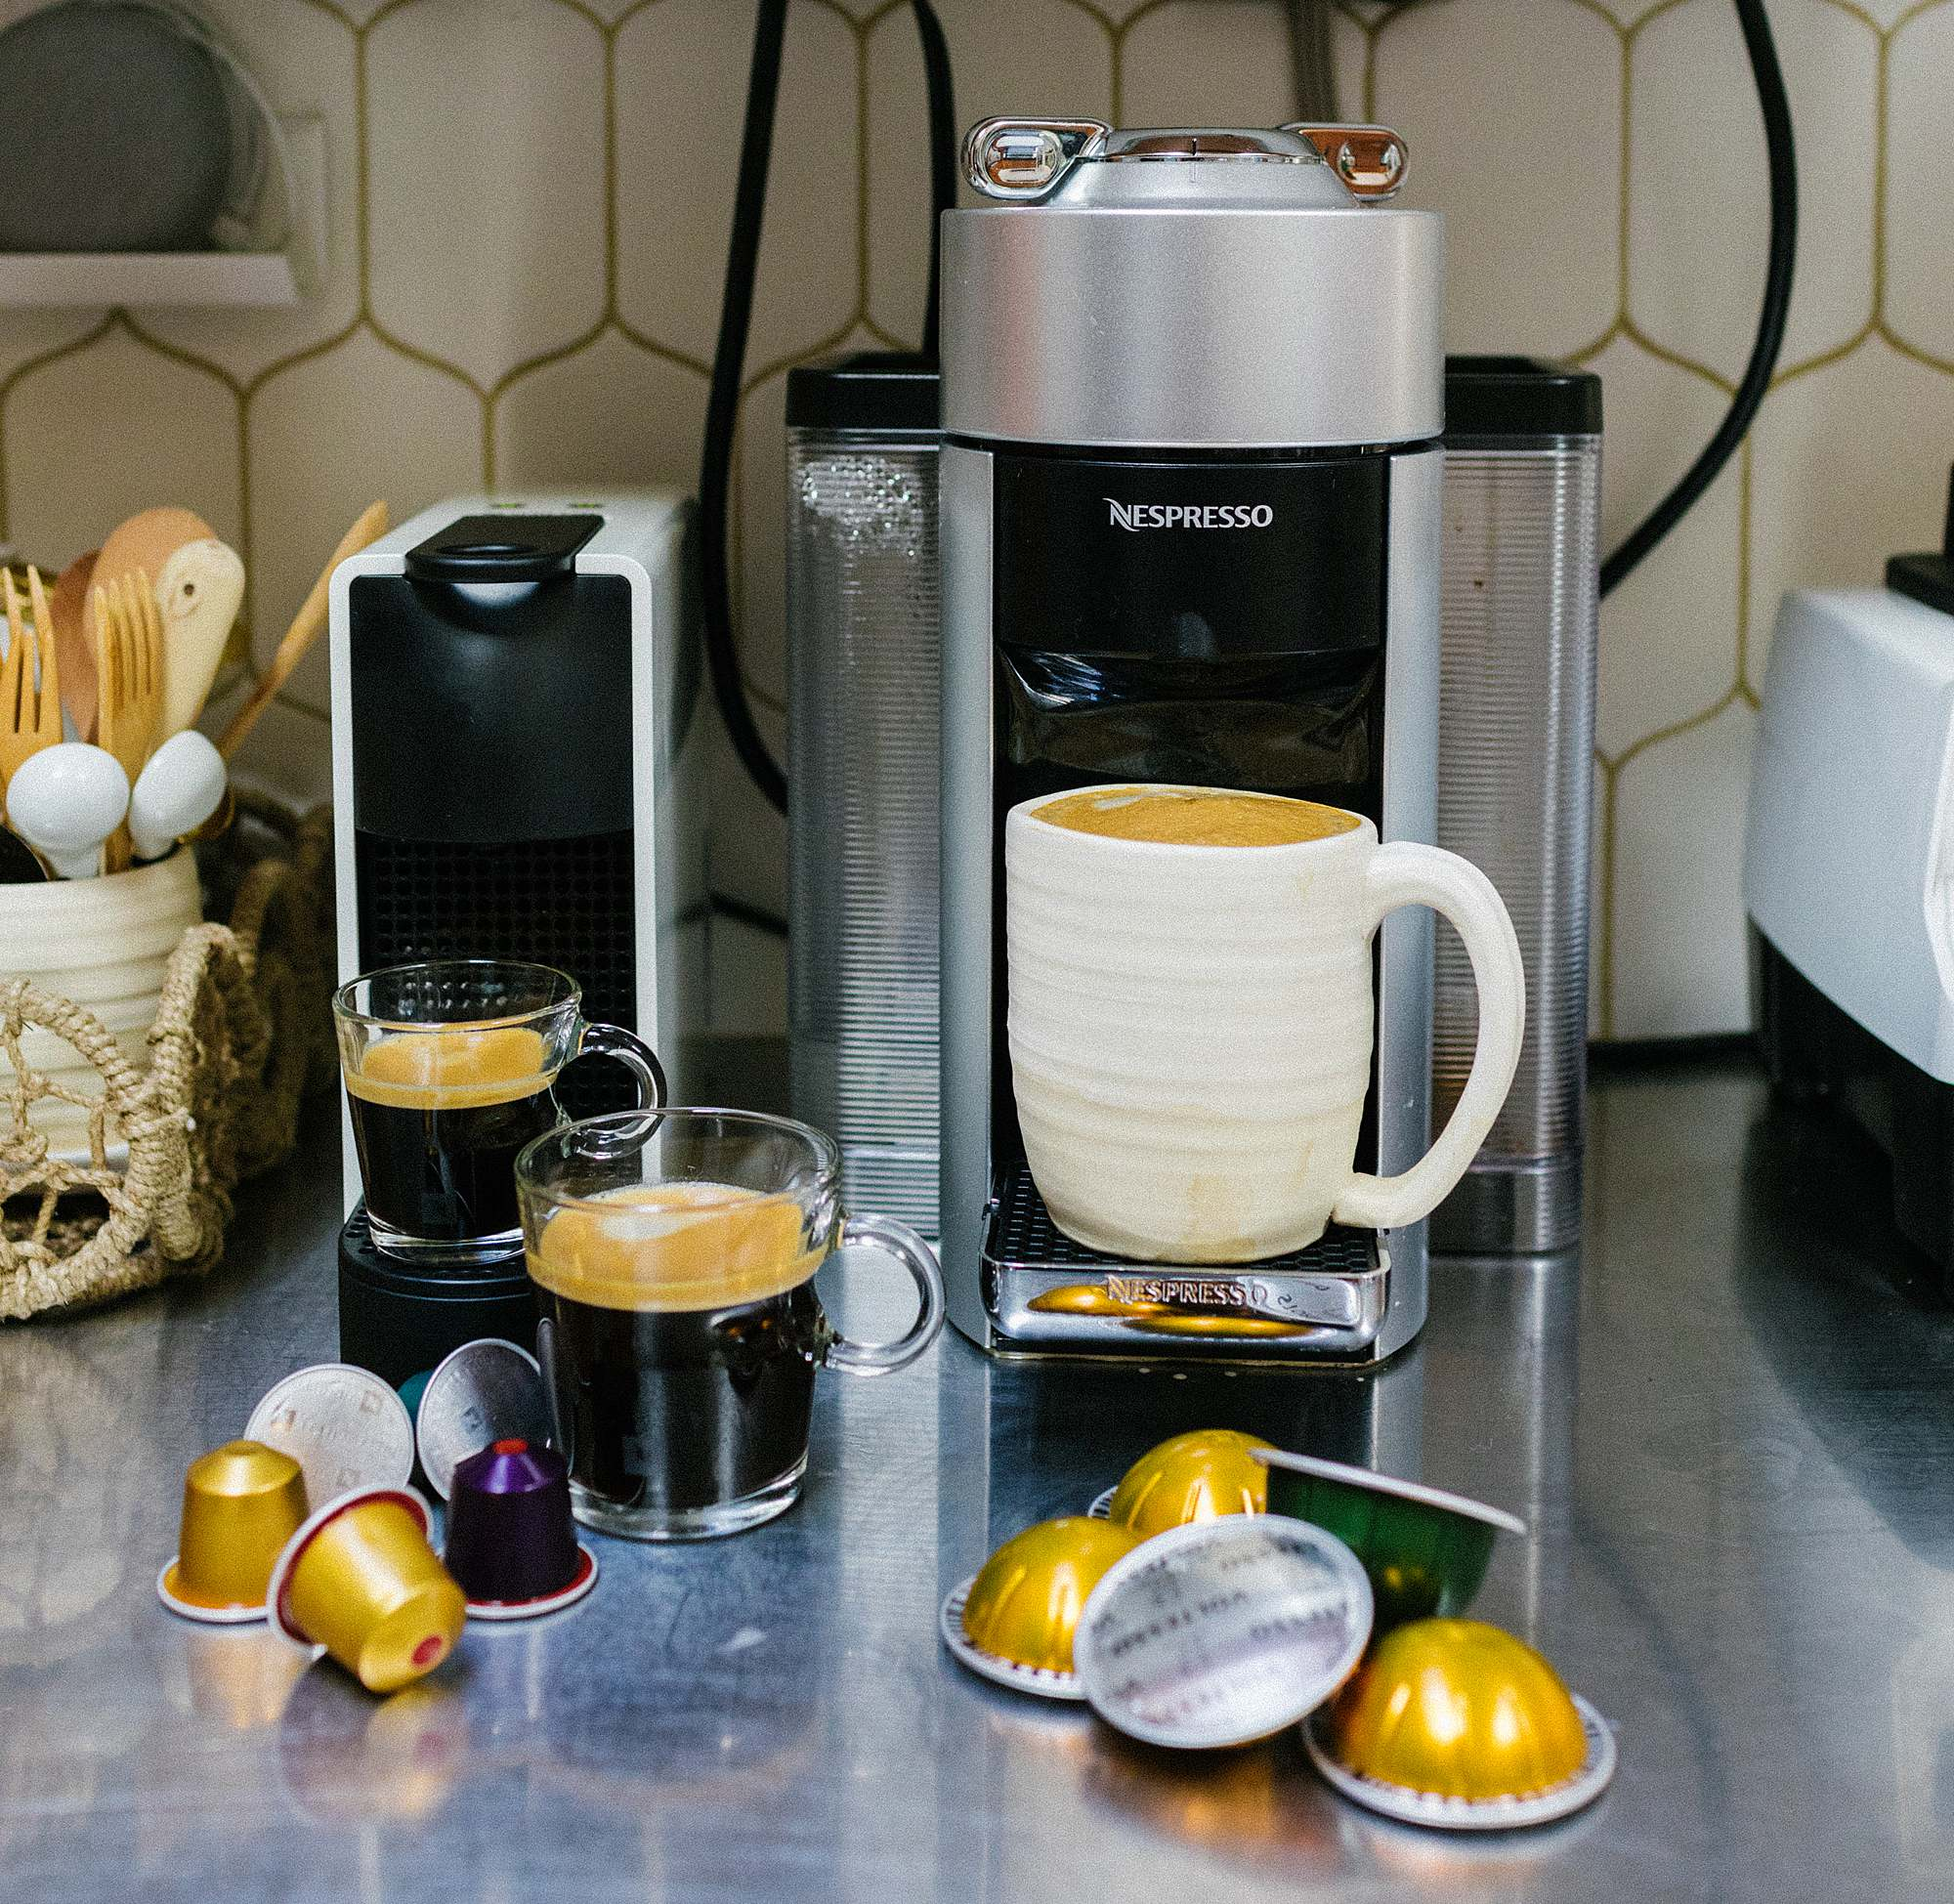 Nespresso machines which one to get? review of the Nespresso machines